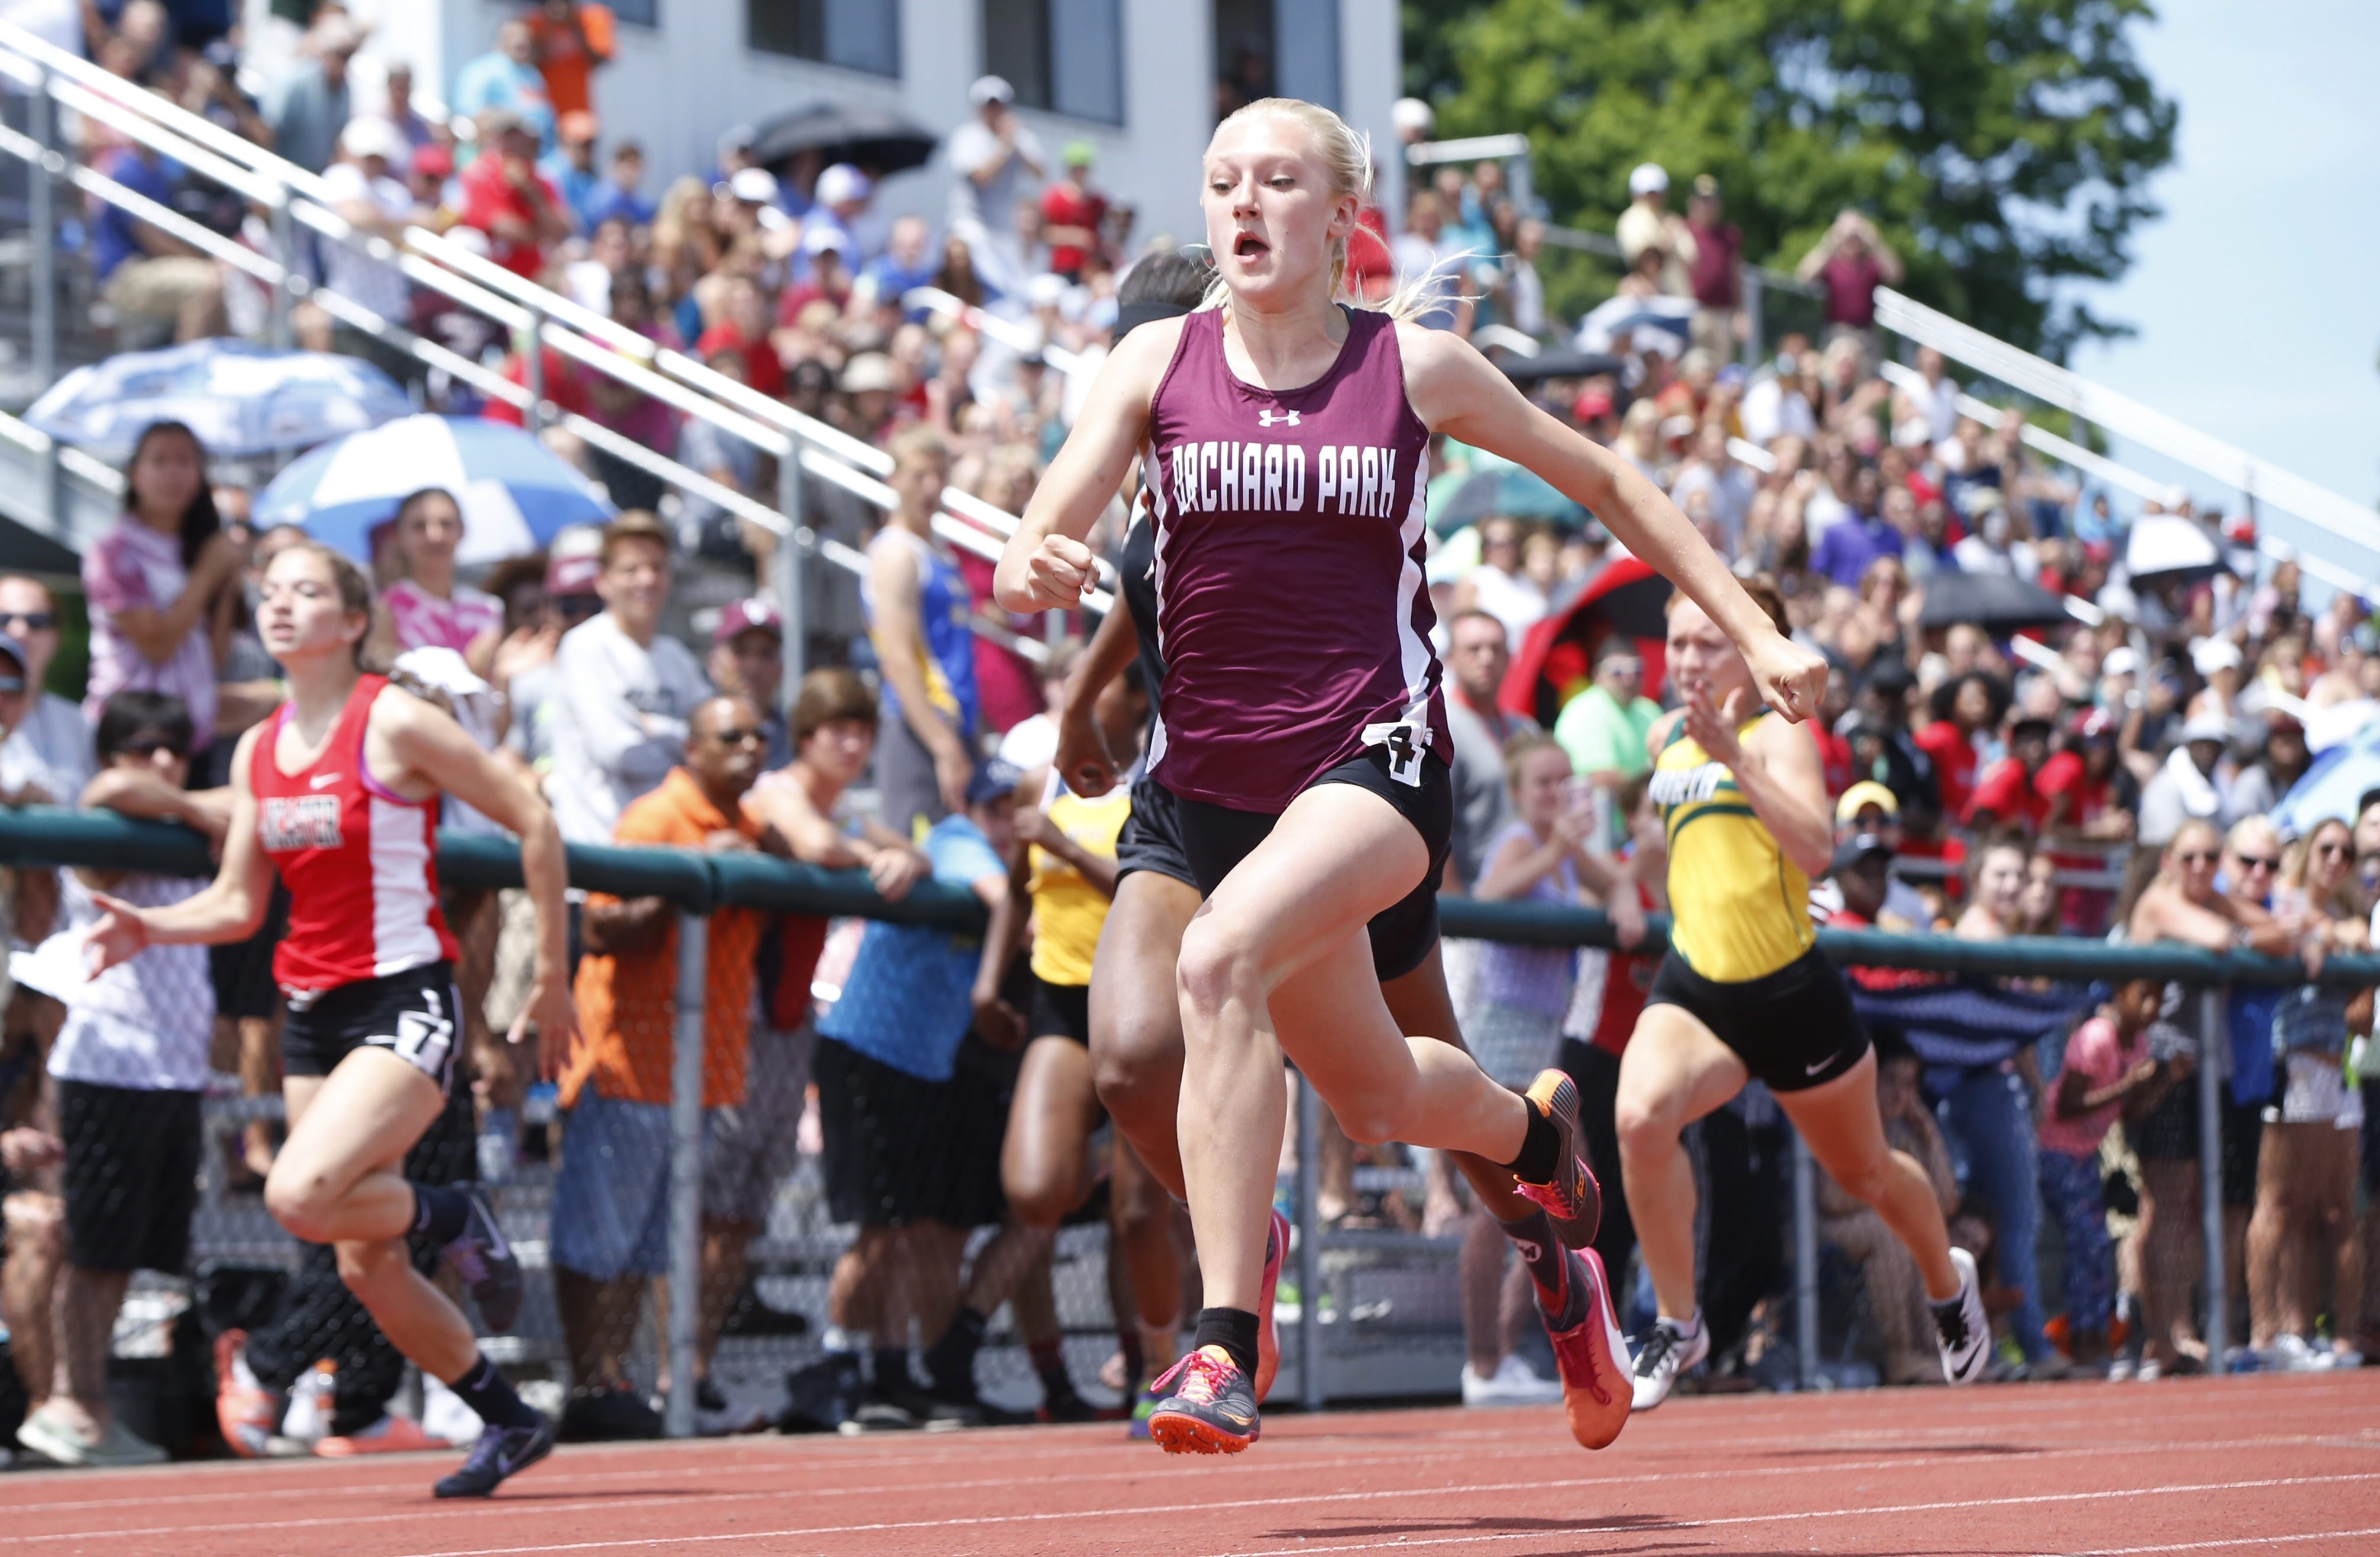 Jenna Crean of Orchard Park hopes to repeat her great performance in the Section VI championship this year. (Harry Scull Jr./Buffalo News)